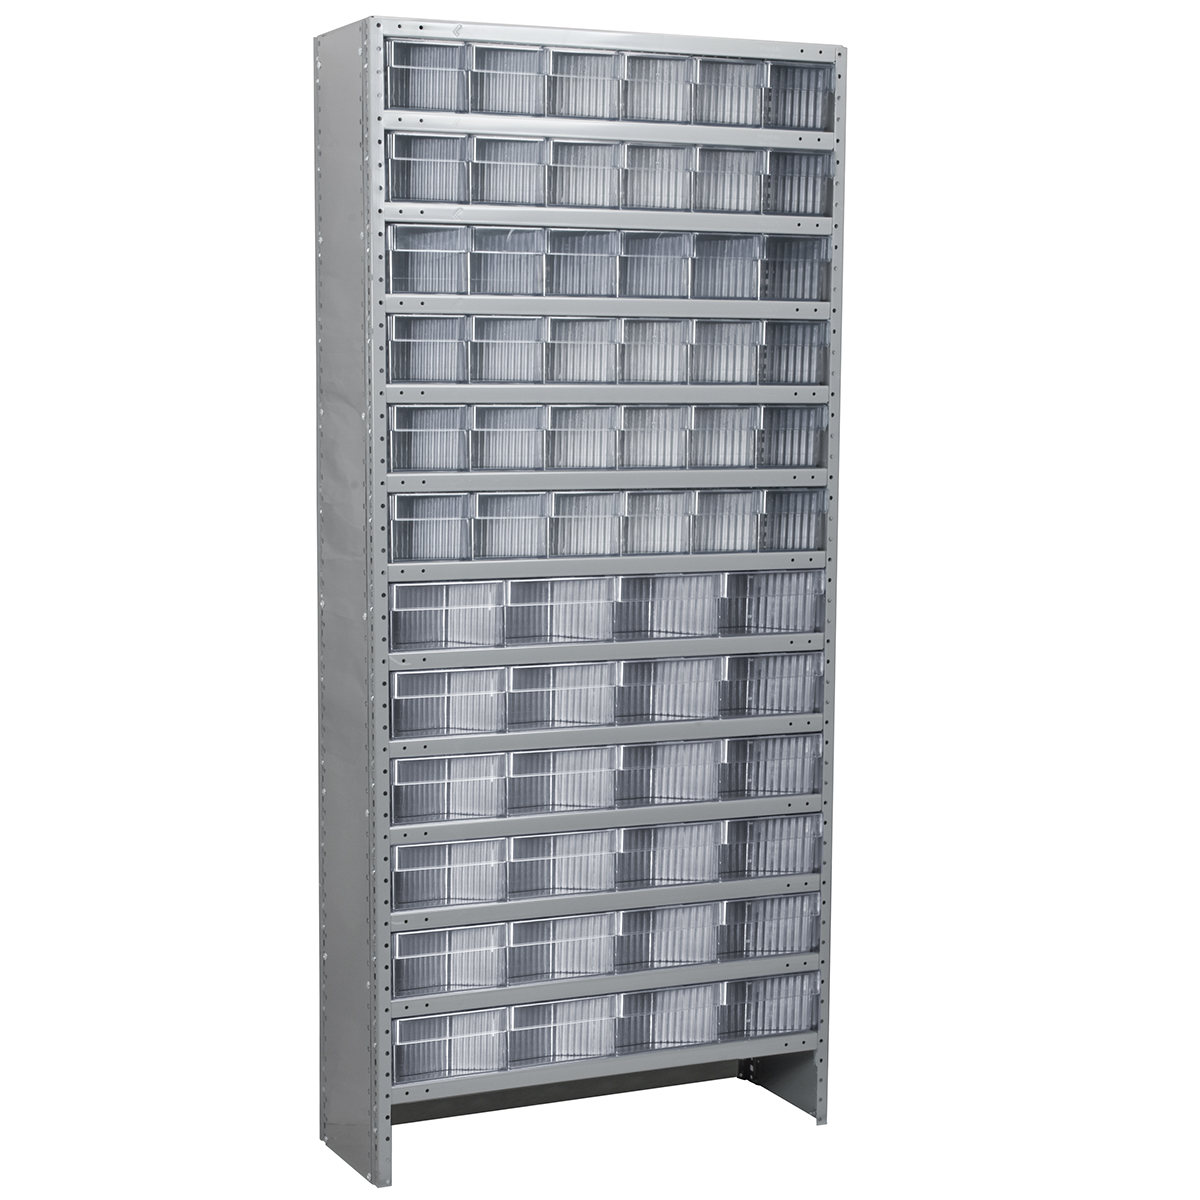 Enclosed Steel Shelving Kit, 18x36x79, 60 AkroDrawers, Gray/Clear.  This item sold in carton quantities of 1.